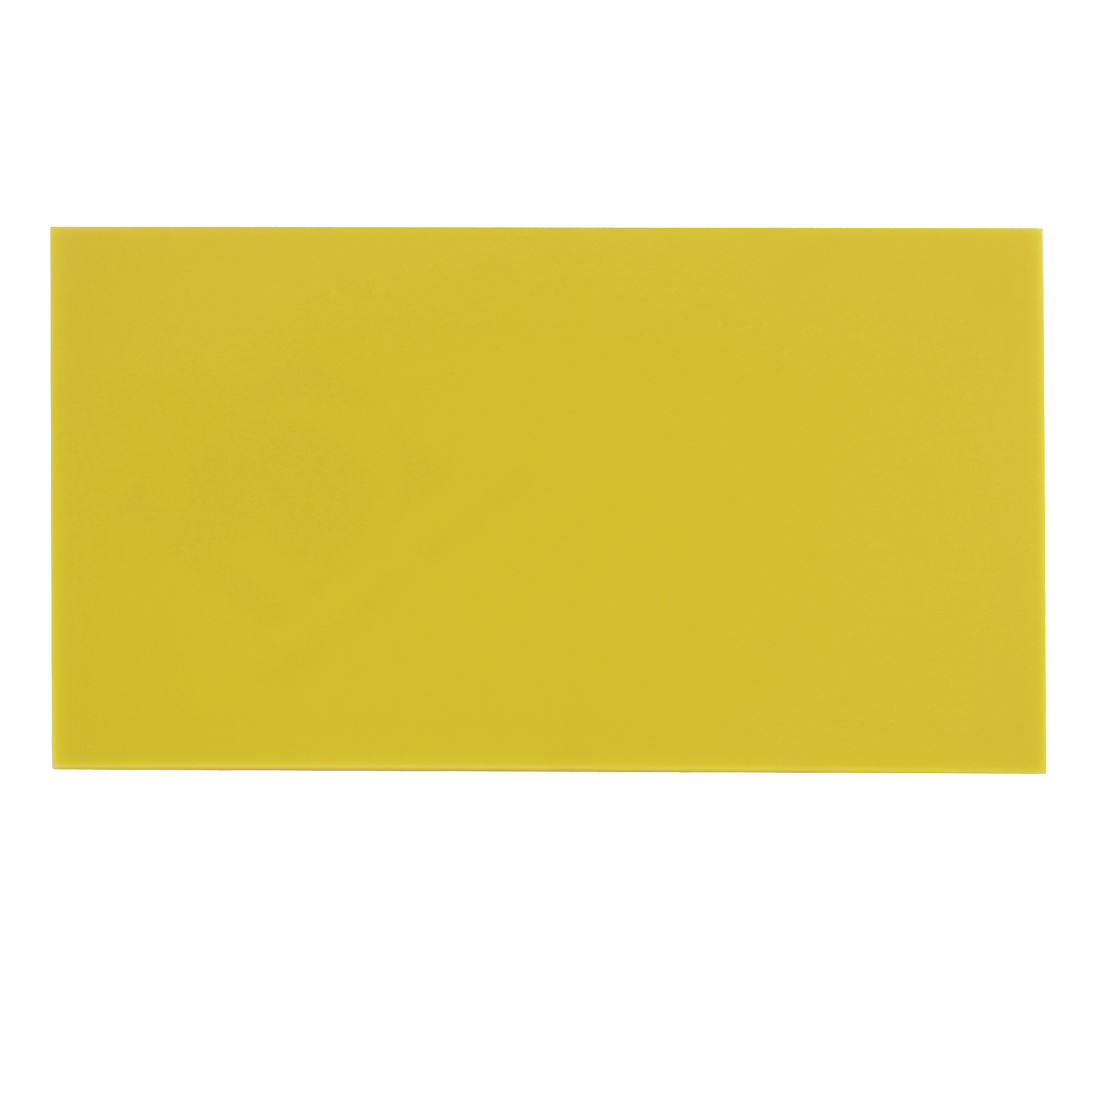 Yellow Plastic Acrylic Plexiglass Sheet A4 Size 210mm x 297mm x 3mm